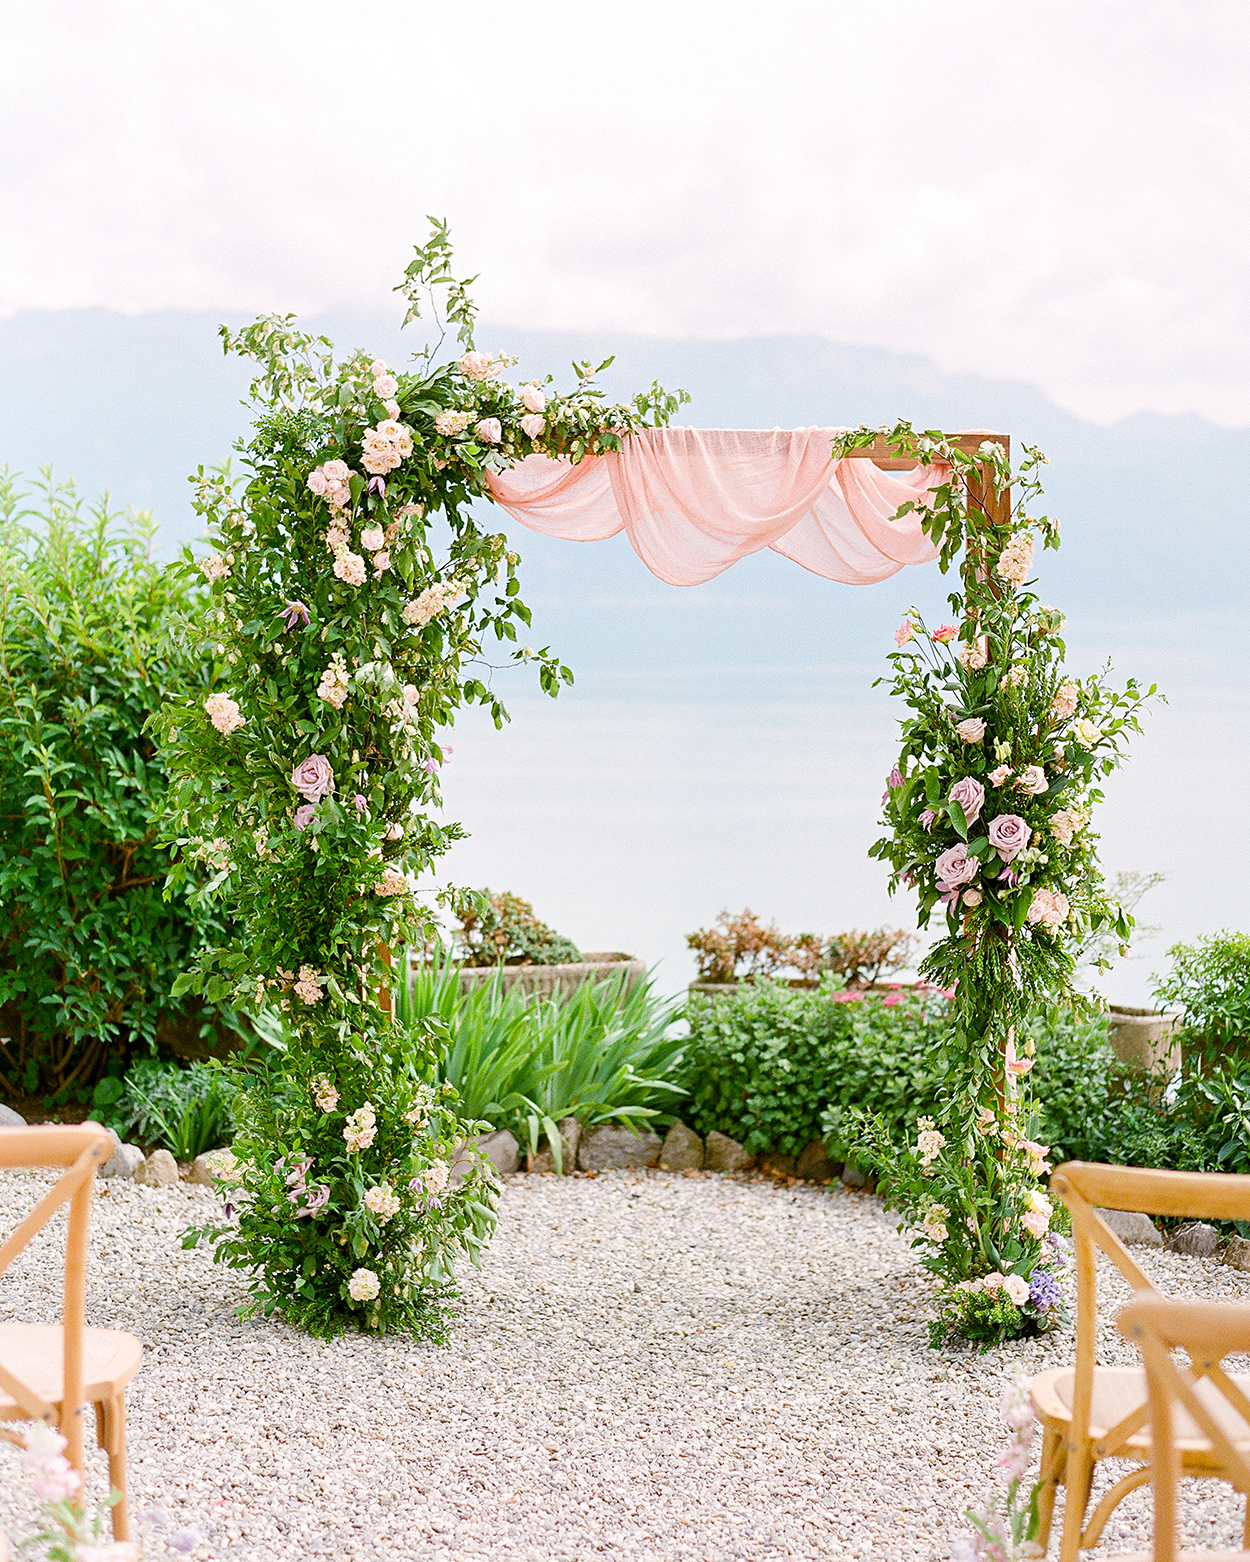 bright pink tulle wrapped around ceremony structure